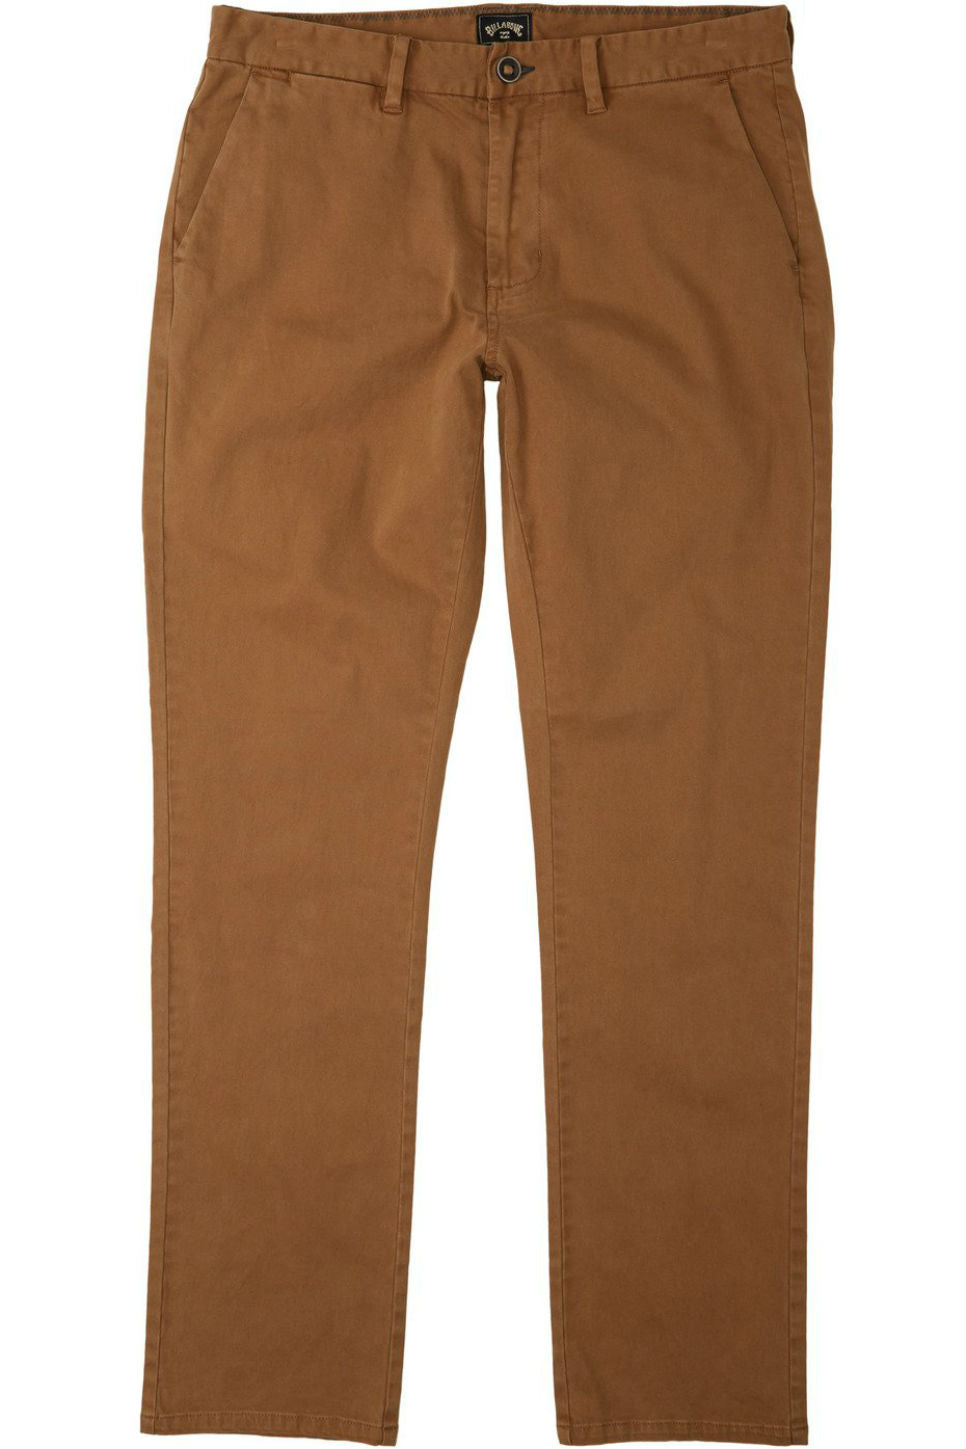 Billabong - 73 Chino - Rustic Brown